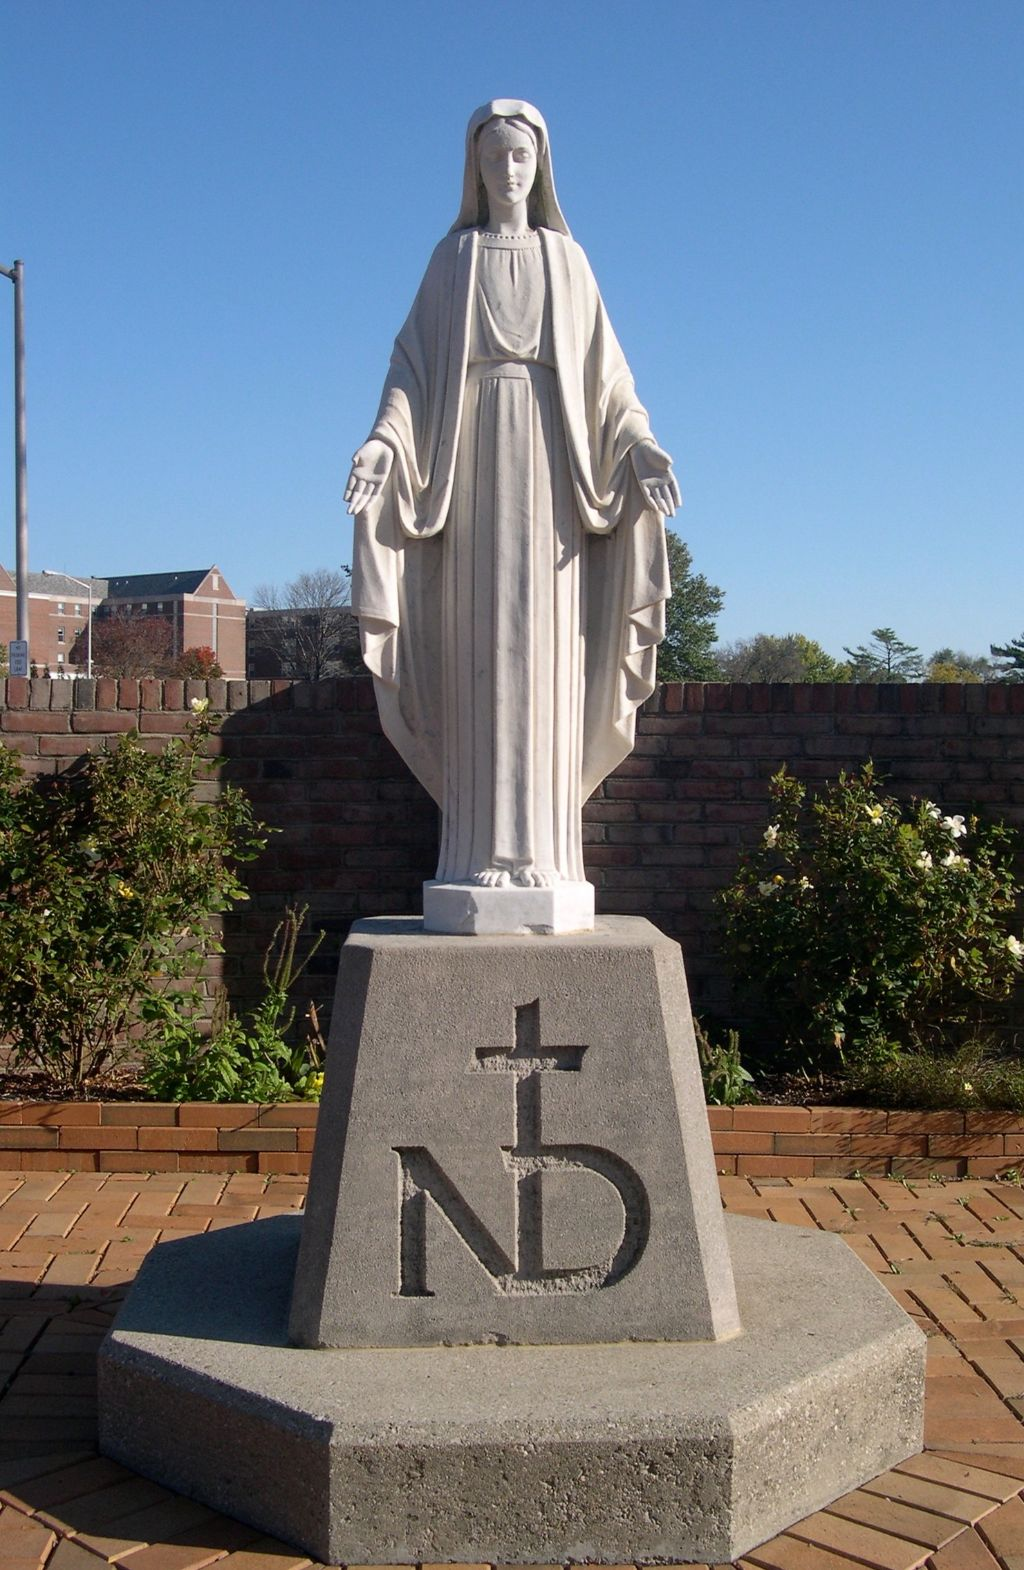 The statue of the Virgin Mary outside at the Notre Dame Academy catholic all-girls school in Covington, Northern Kentucky.